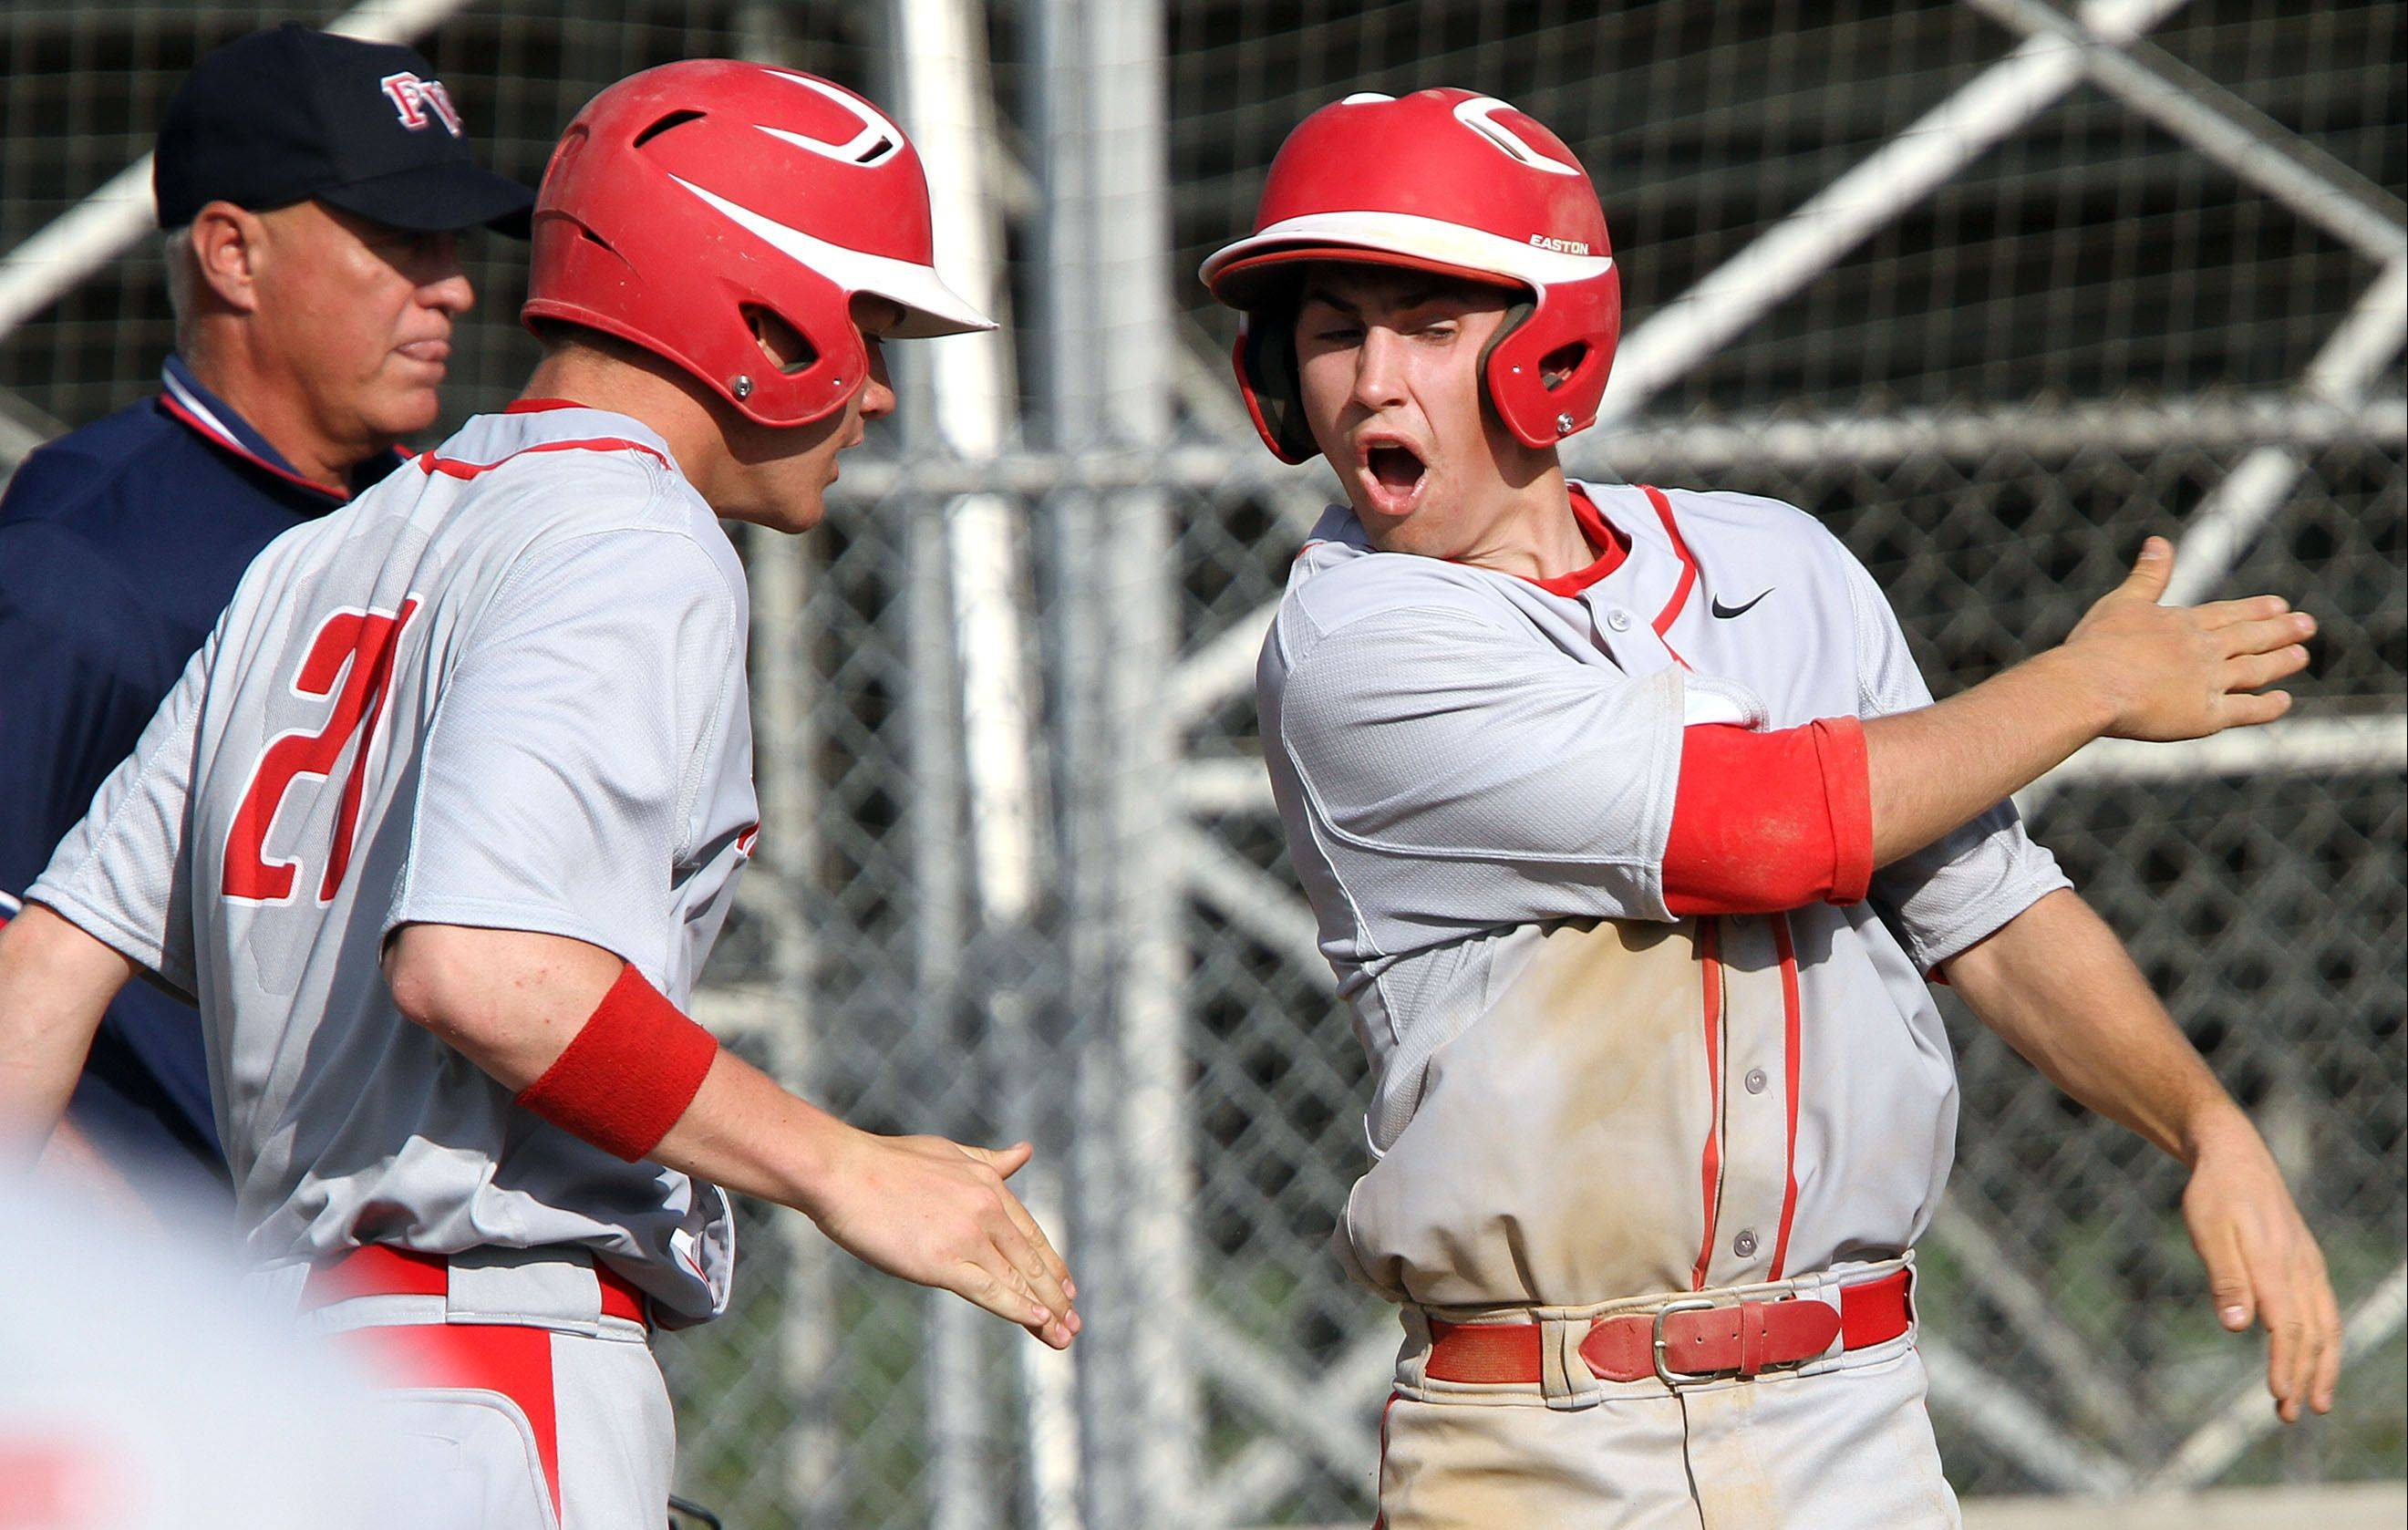 Mundelein's Zach Osisek , right, high-fives teammate Luke Adams after Osisek scored after a play at the plate at Libertyville on Wednesday.